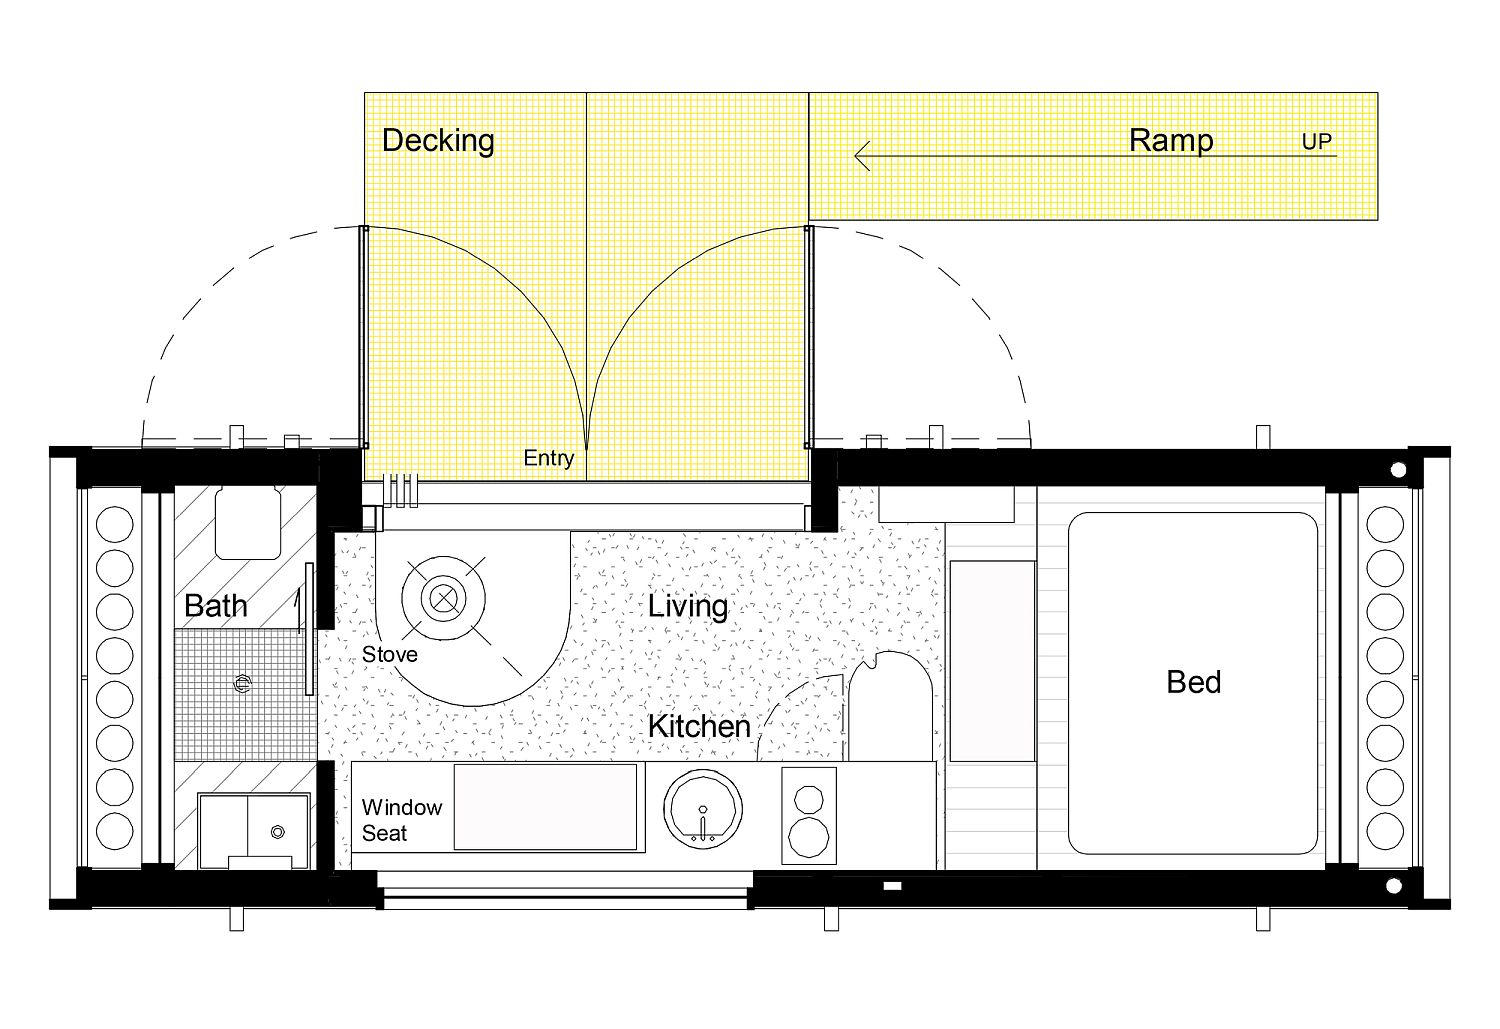 Floor plan of the Tiny Home